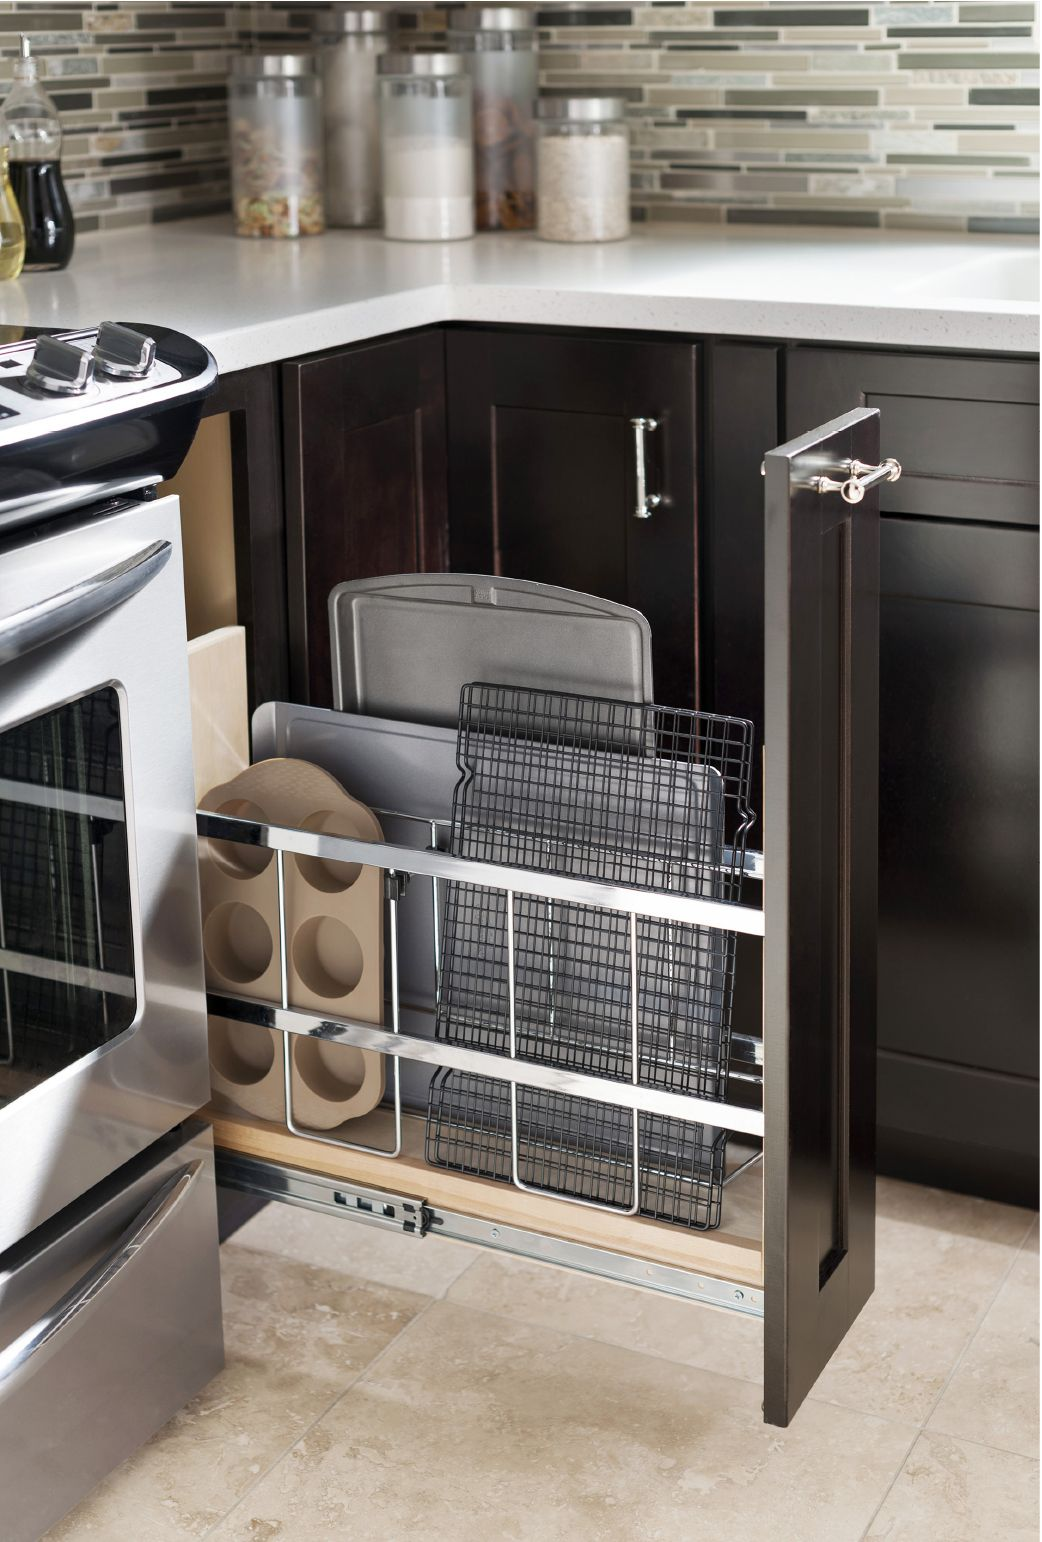 Base Tray Divider Pull Out Design By Allen Roth Kitchen Layout Kitchen Makeover Cabinetry